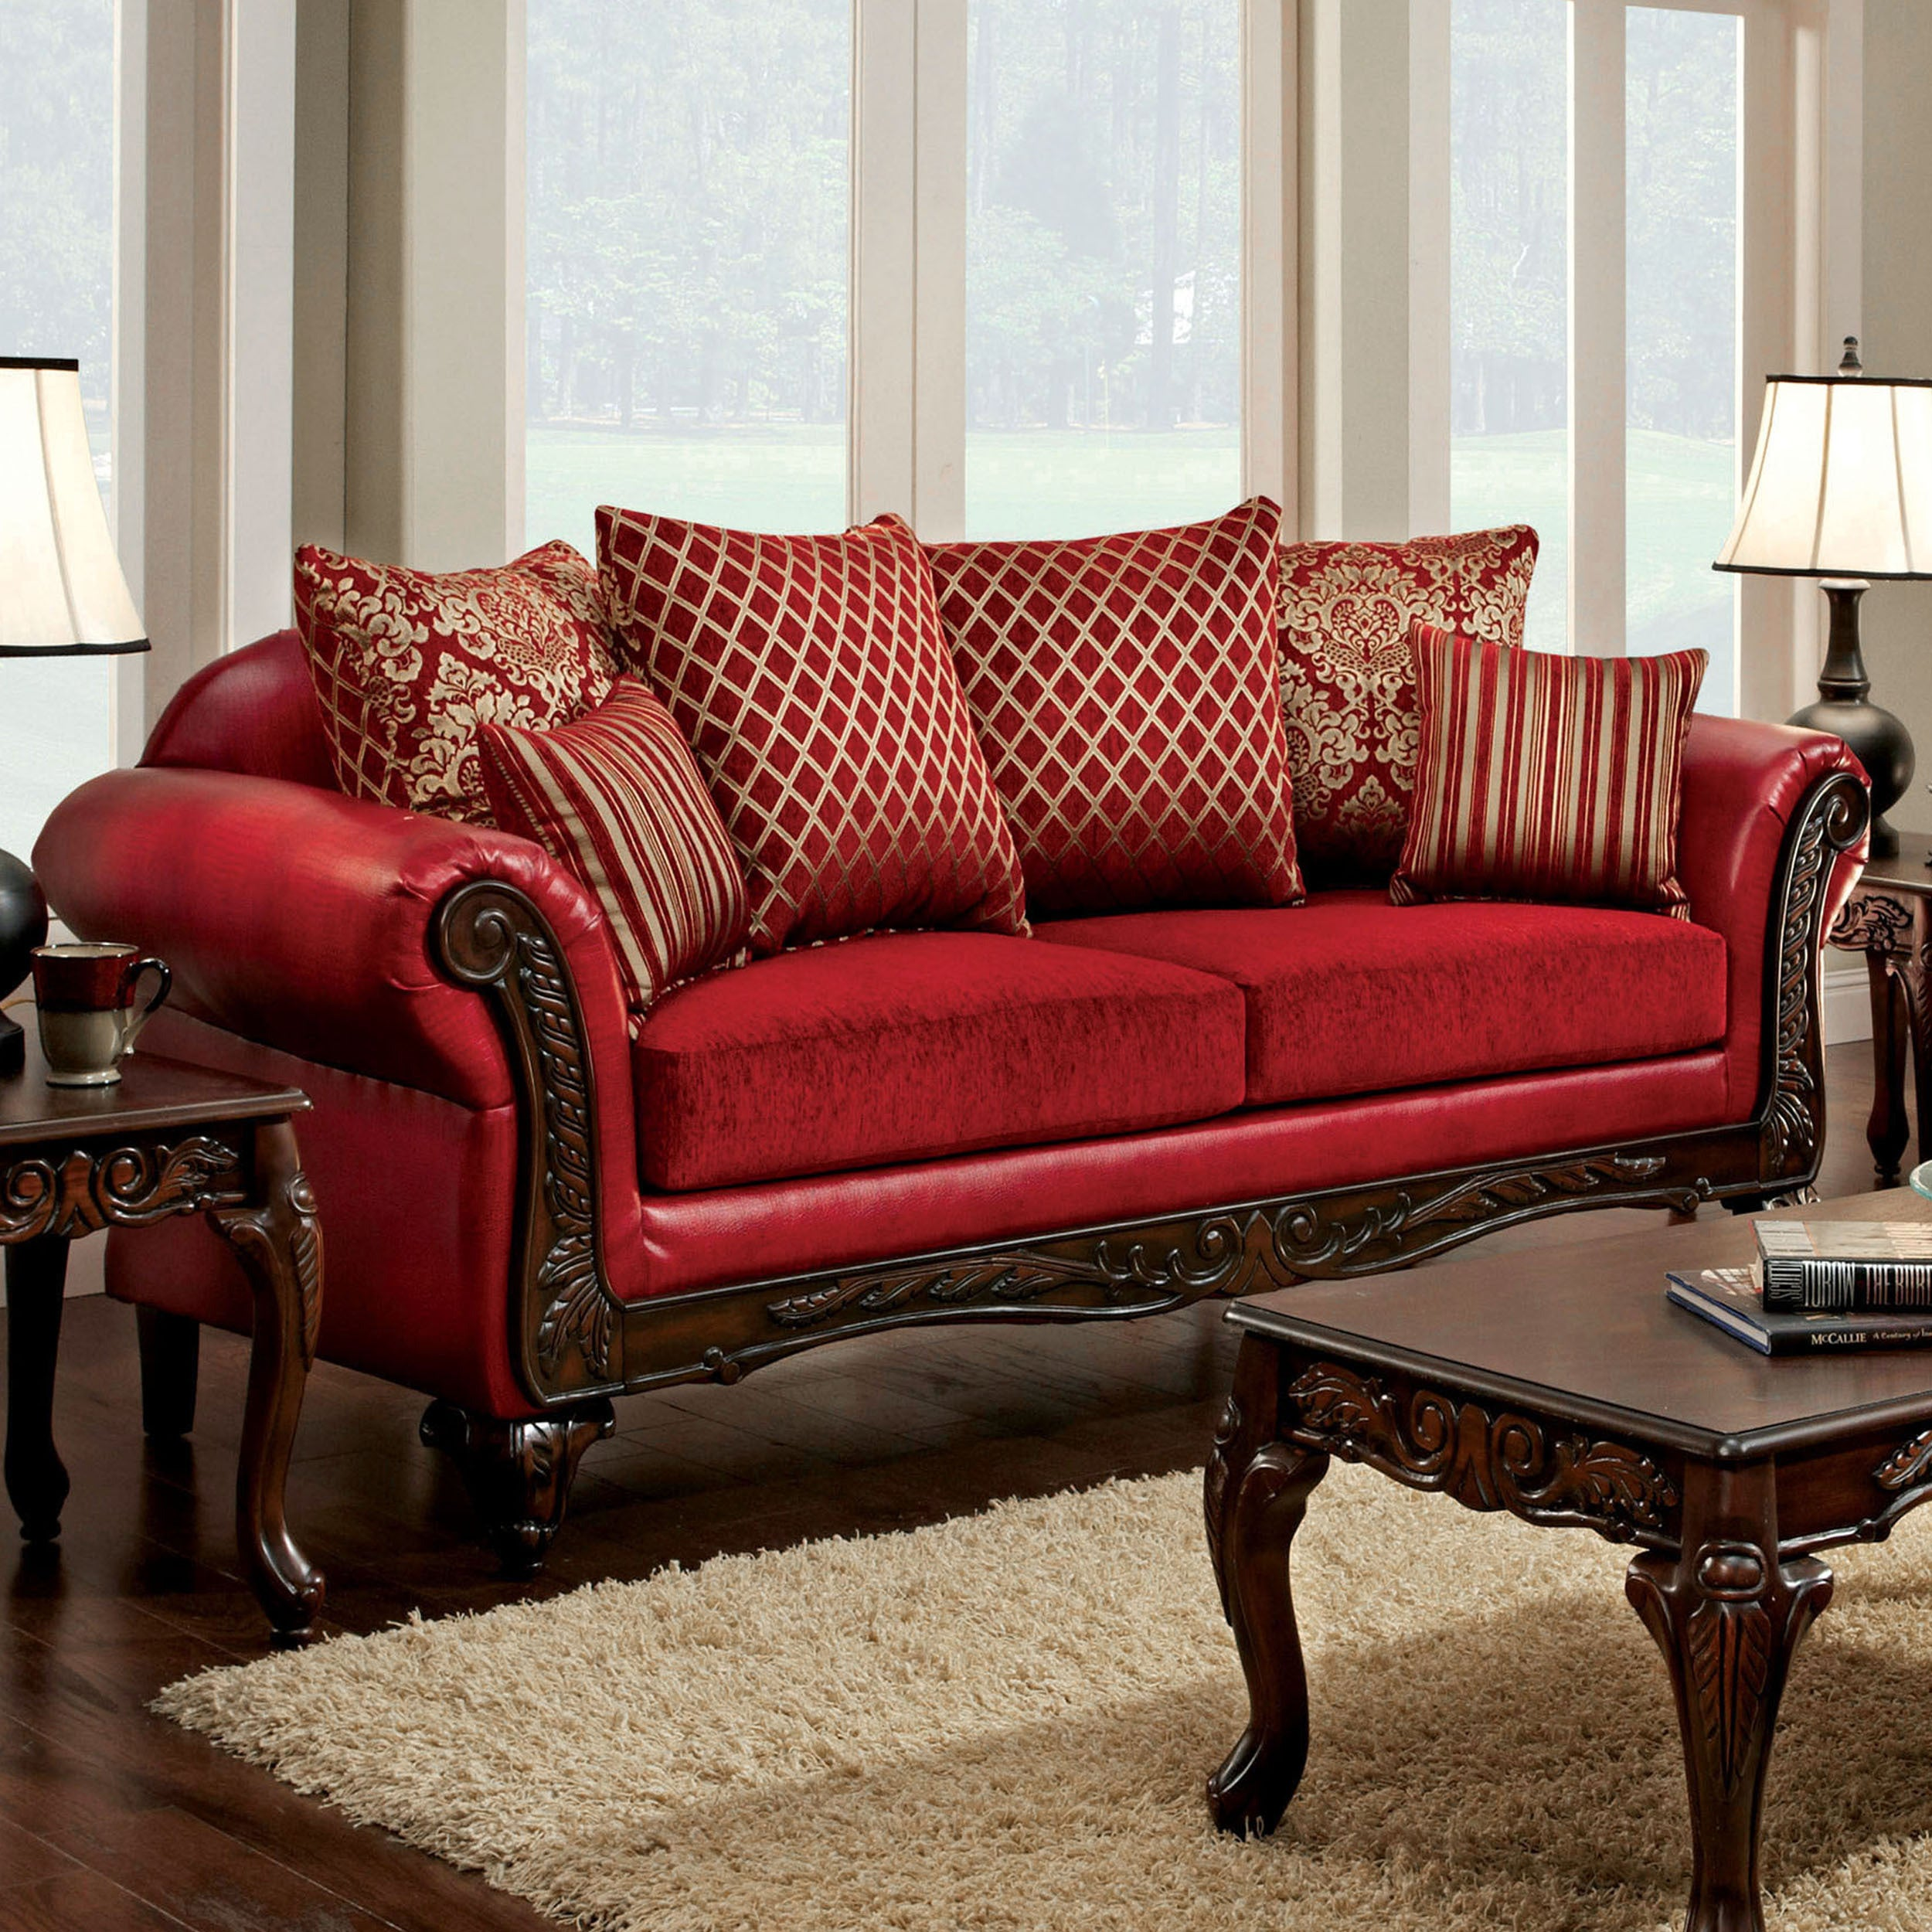 Phenomenal Cardinal Traditional Red Sofa By Foa Download Free Architecture Designs Scobabritishbridgeorg